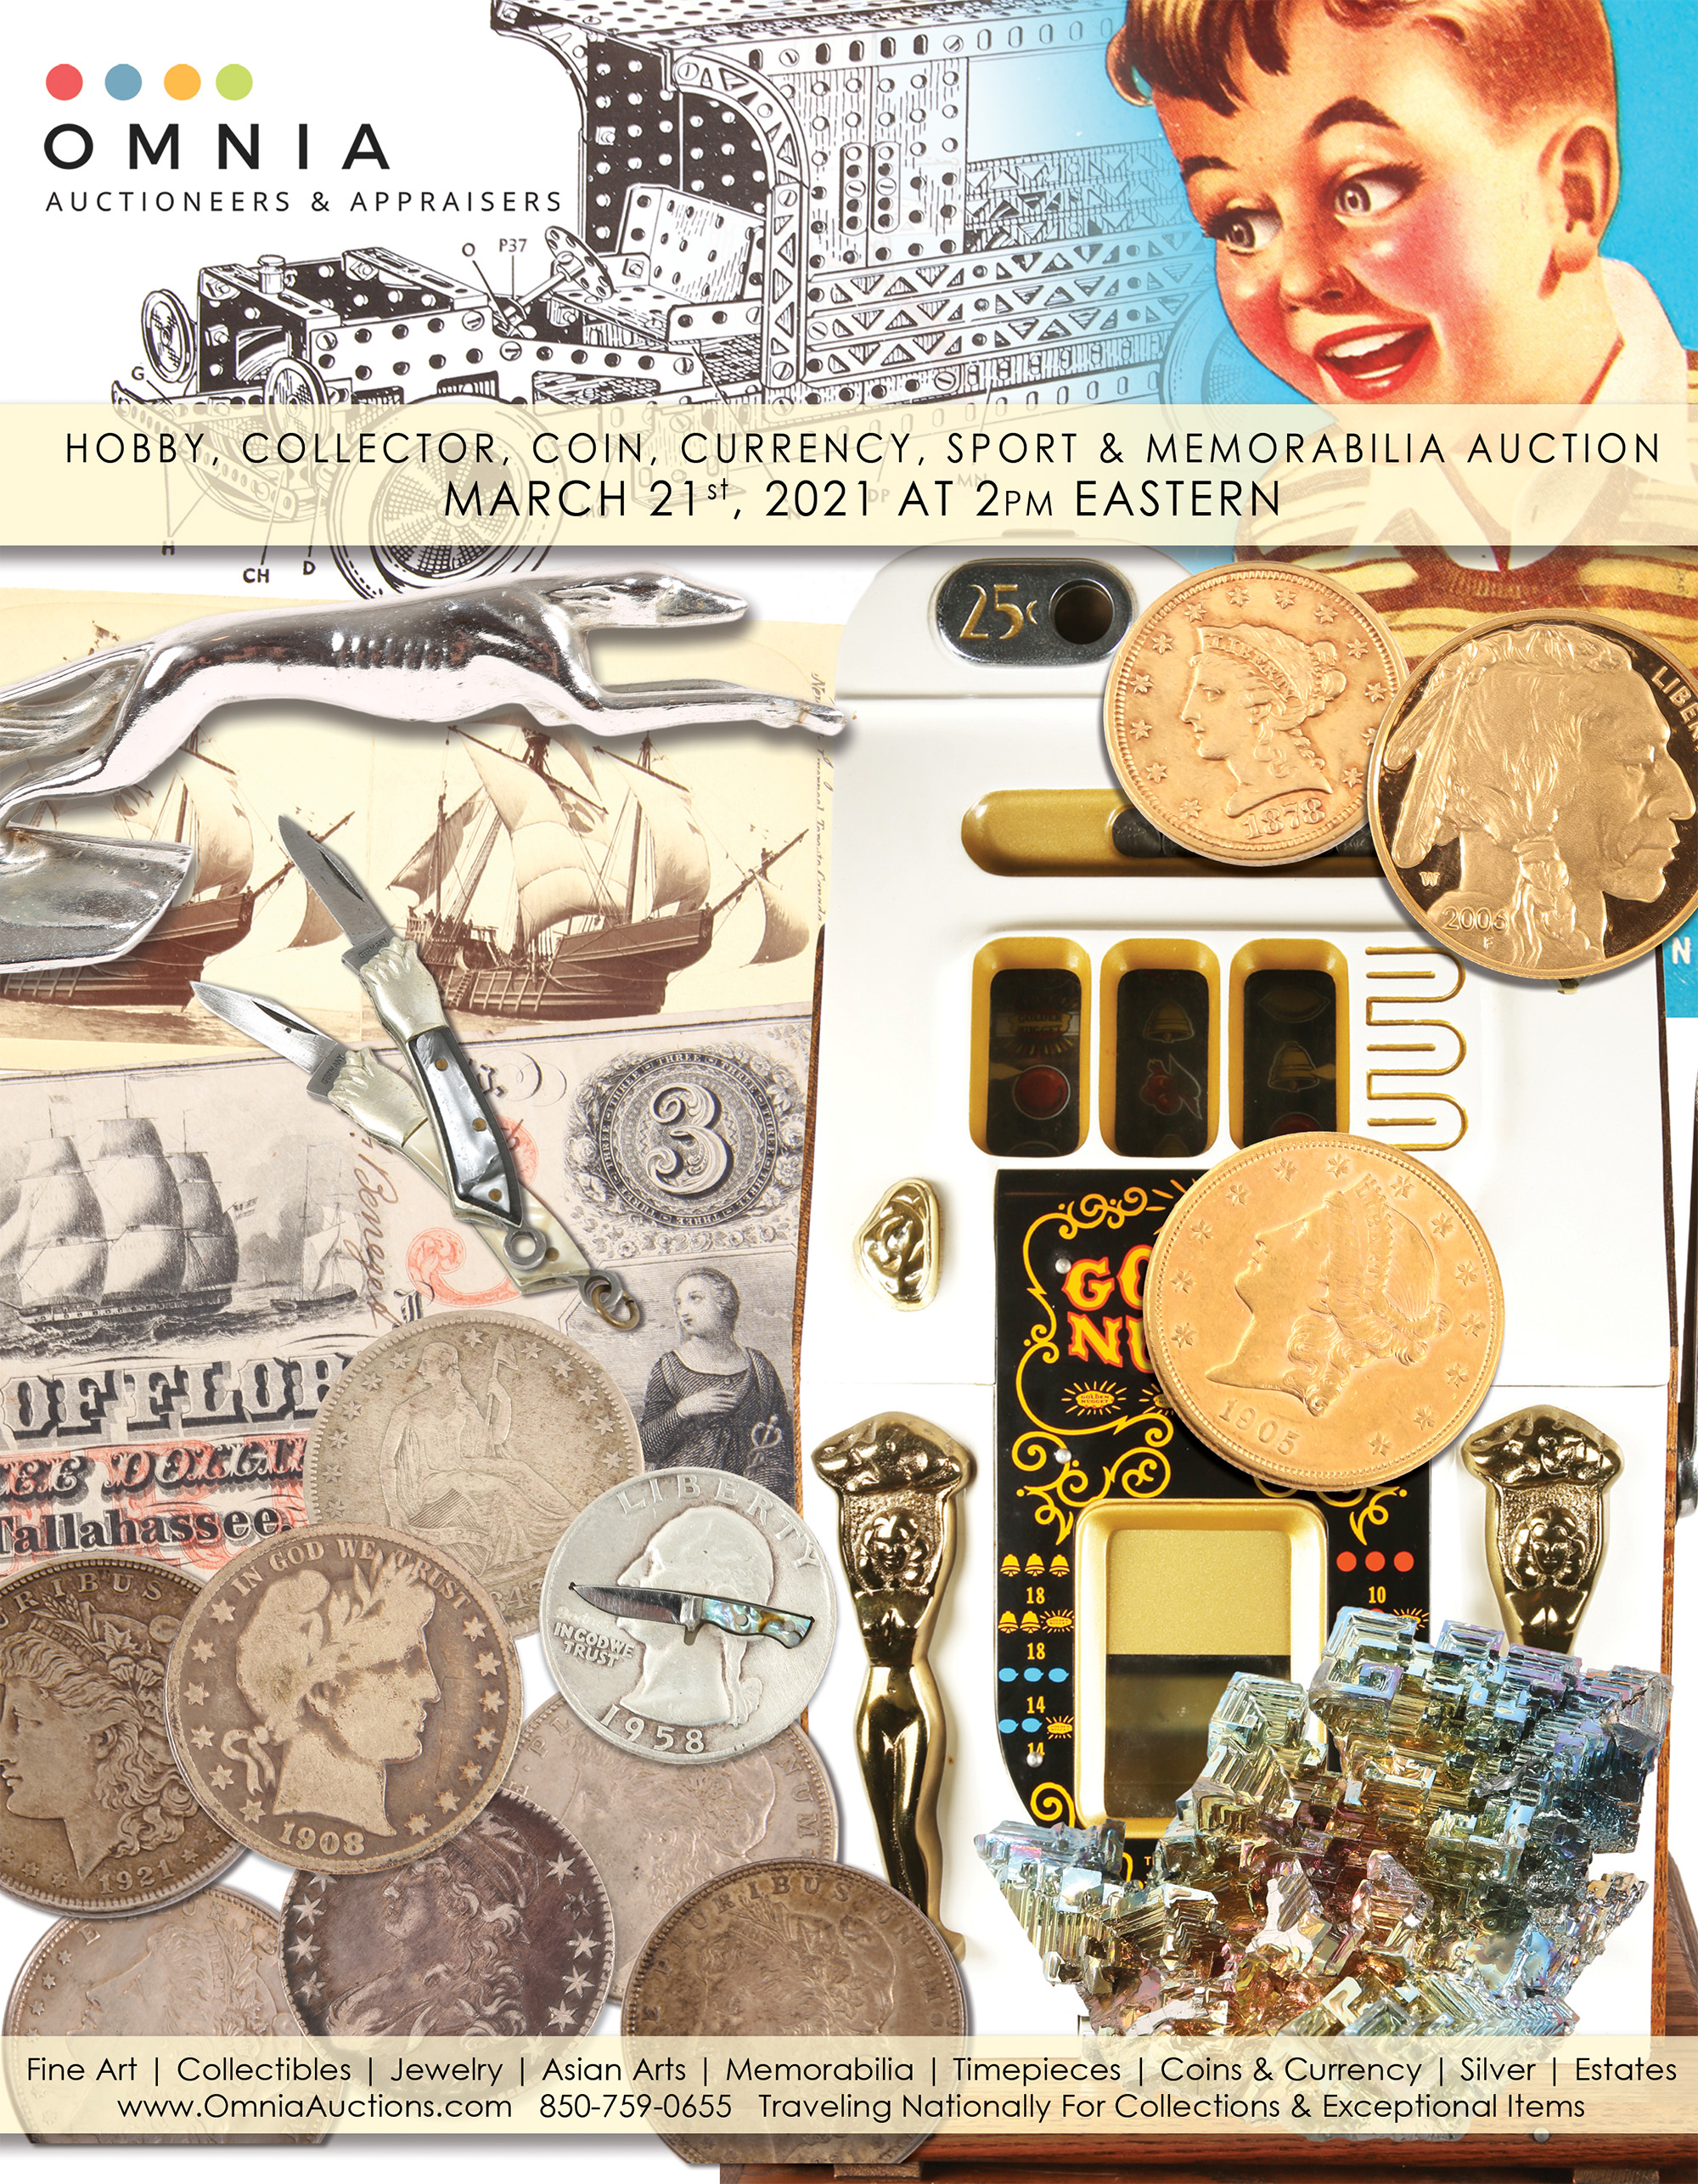 Collector, Hobby, Coin, Currency, Sport, Memorabilia & Bottle Auction - C